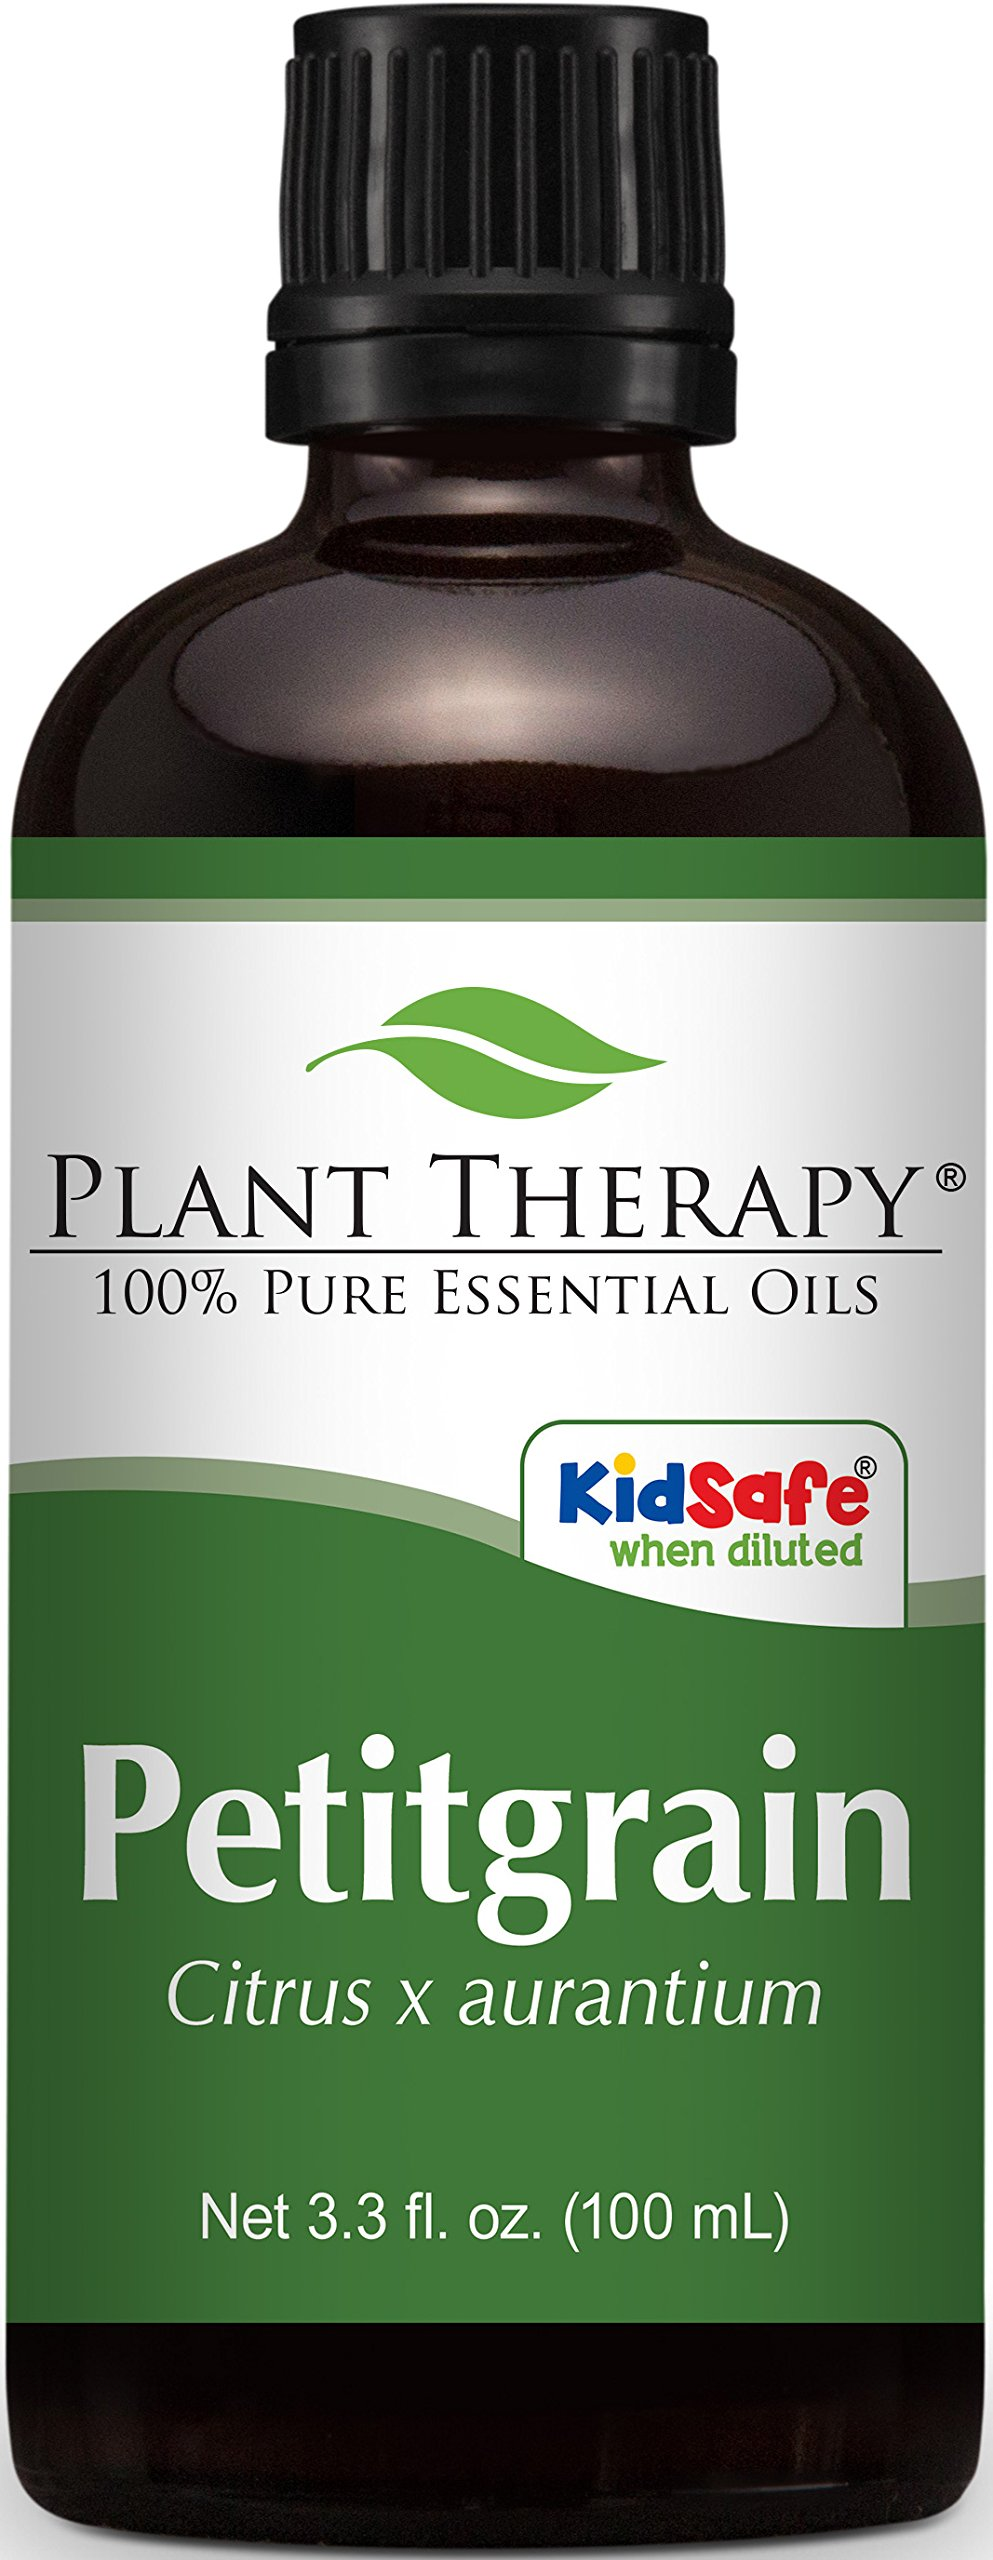 Plant Therapy Petitgrain Essential Oil 100 mL (3.3 oz) 100% Pure, Undiluted, Therapeutic Grade by Plant Therapy (Image #1)